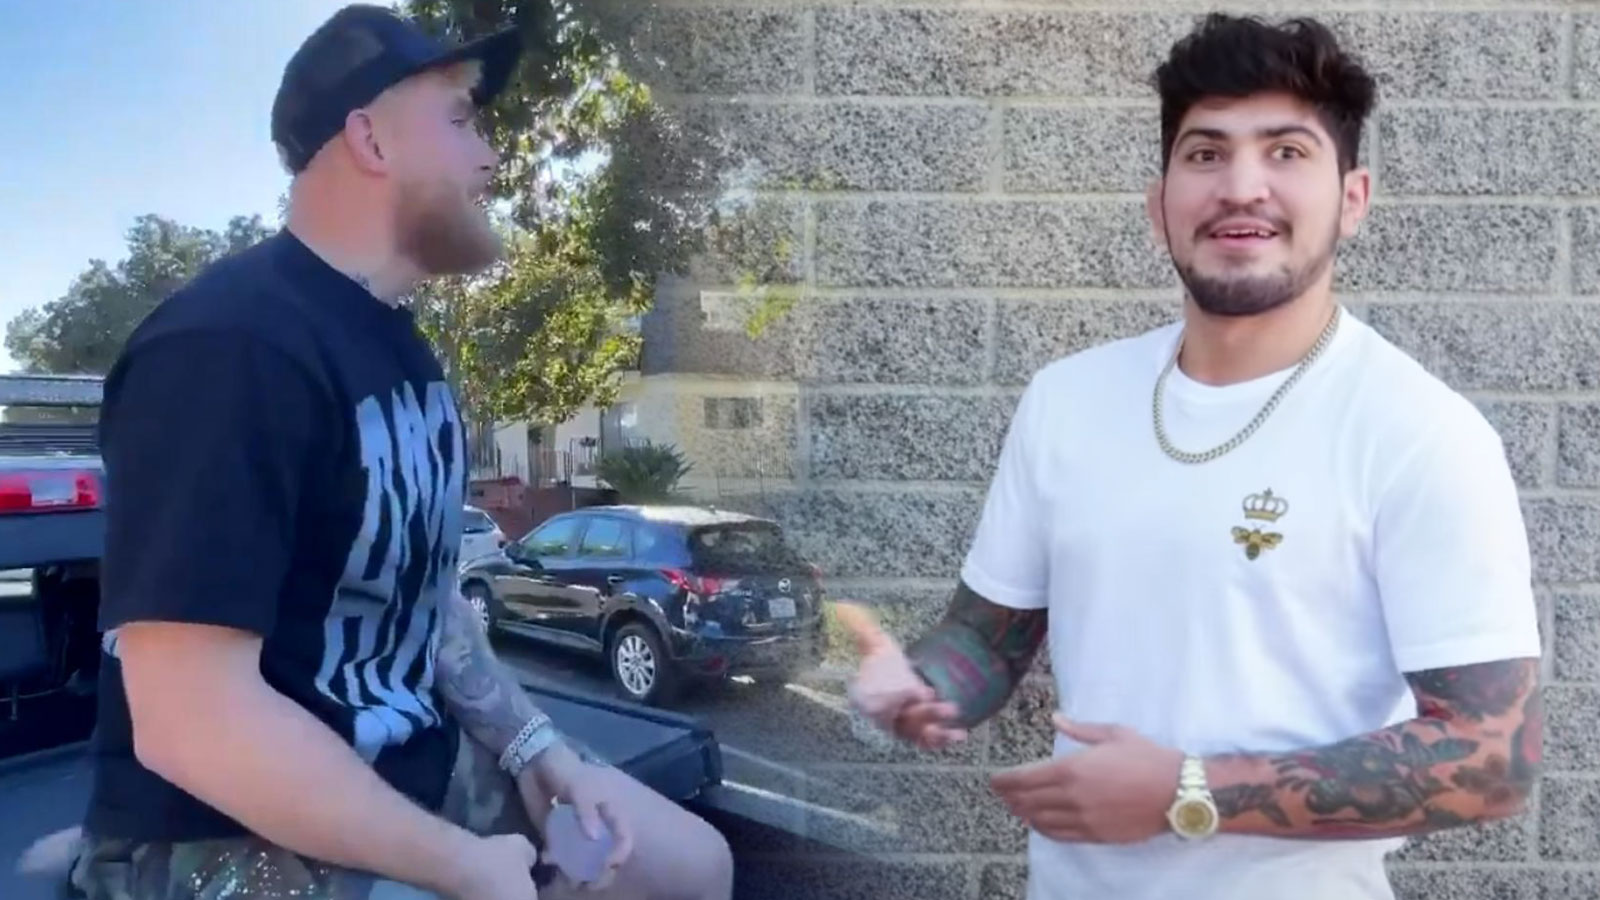 Jake Paul pranks Dillon Danis with waterballoons